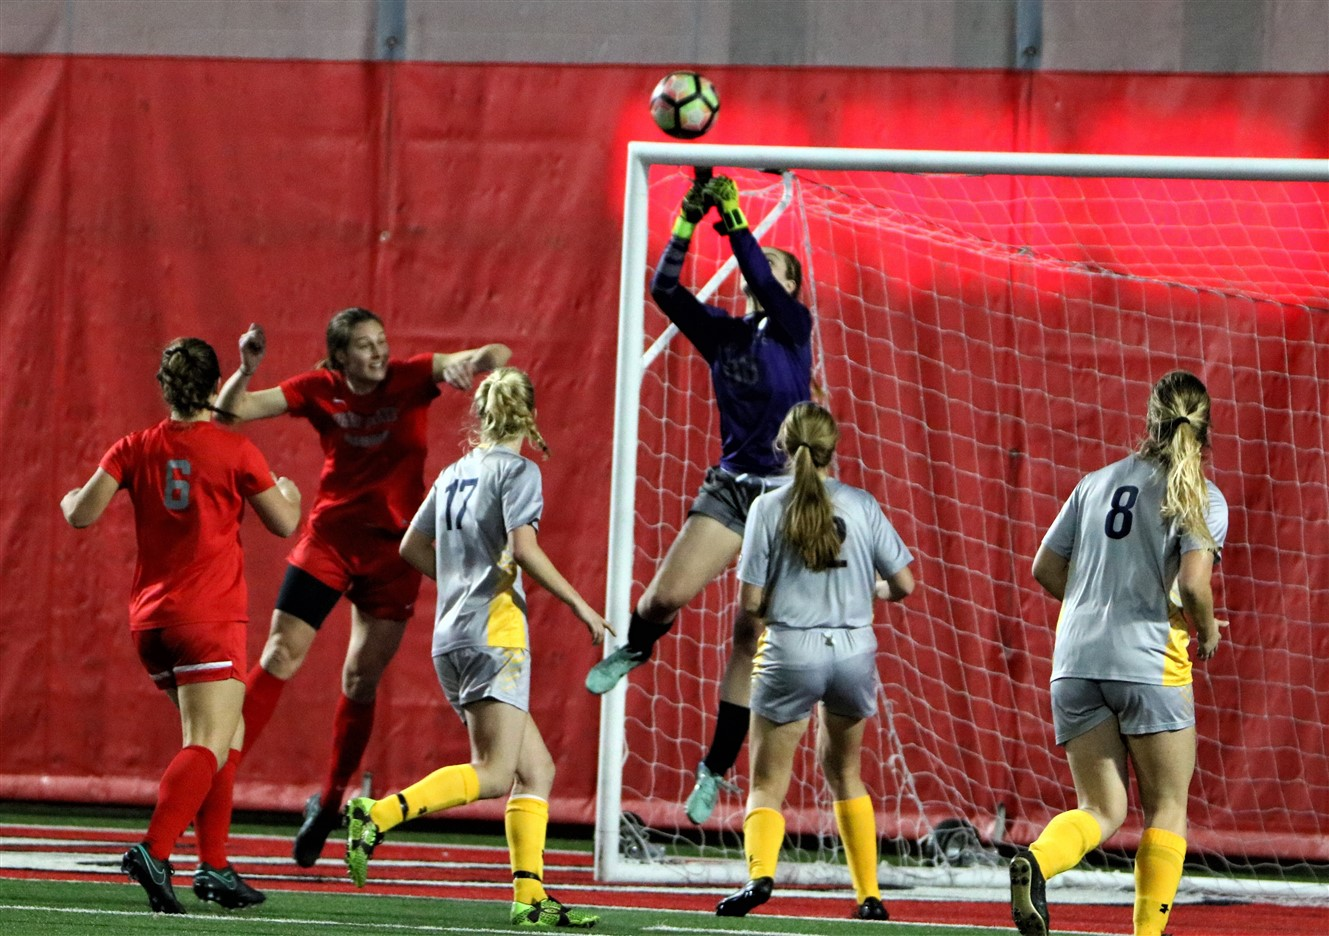 2017 03 05 103 Ohio State University Womens Soccer.jpg